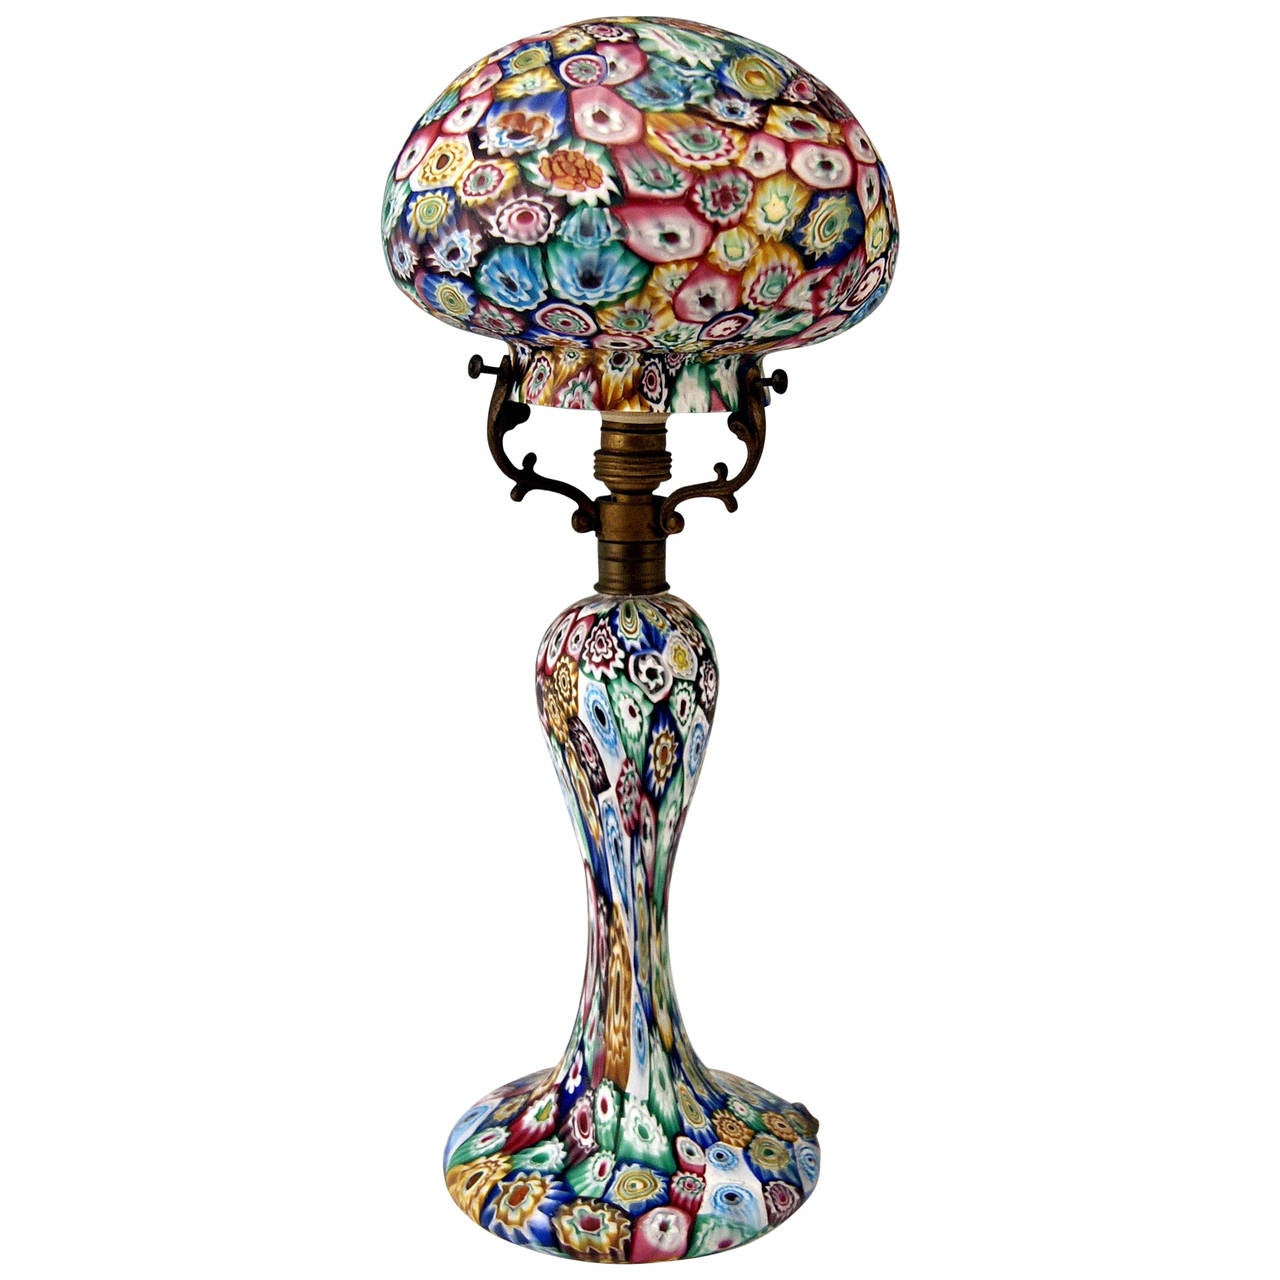 murano vintage glass lamp millefiori fratelli toso circa 1920 1925 at 1stdibs. Black Bedroom Furniture Sets. Home Design Ideas